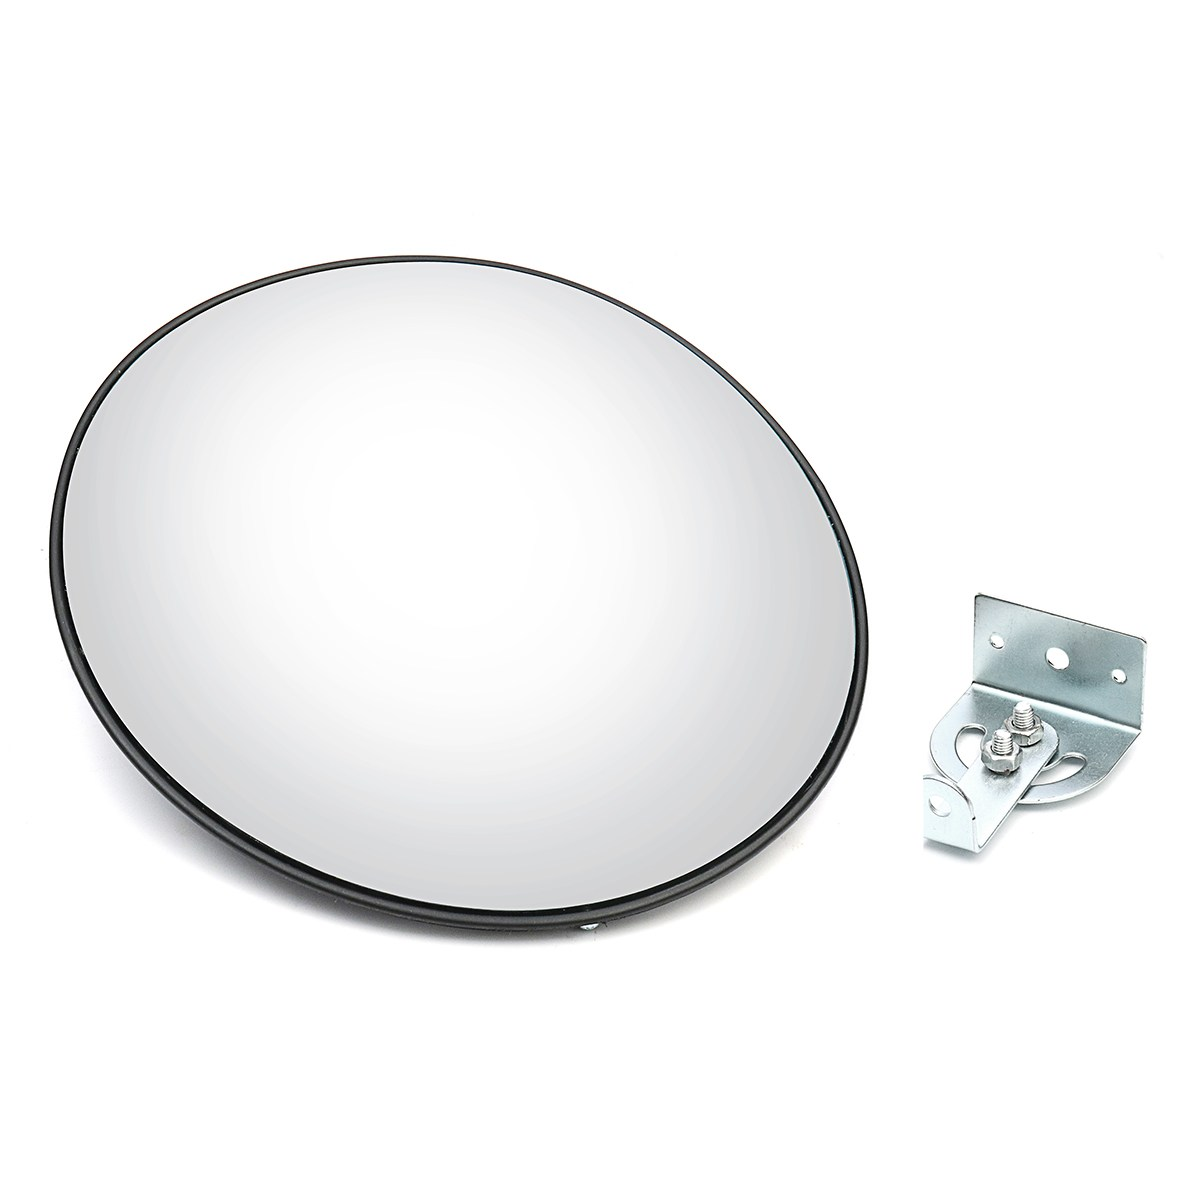 NEW Safurance 30cm Wide Angle Curved Convex Security Road Mirror For Indoor Burglar Traffic Signal Roadway